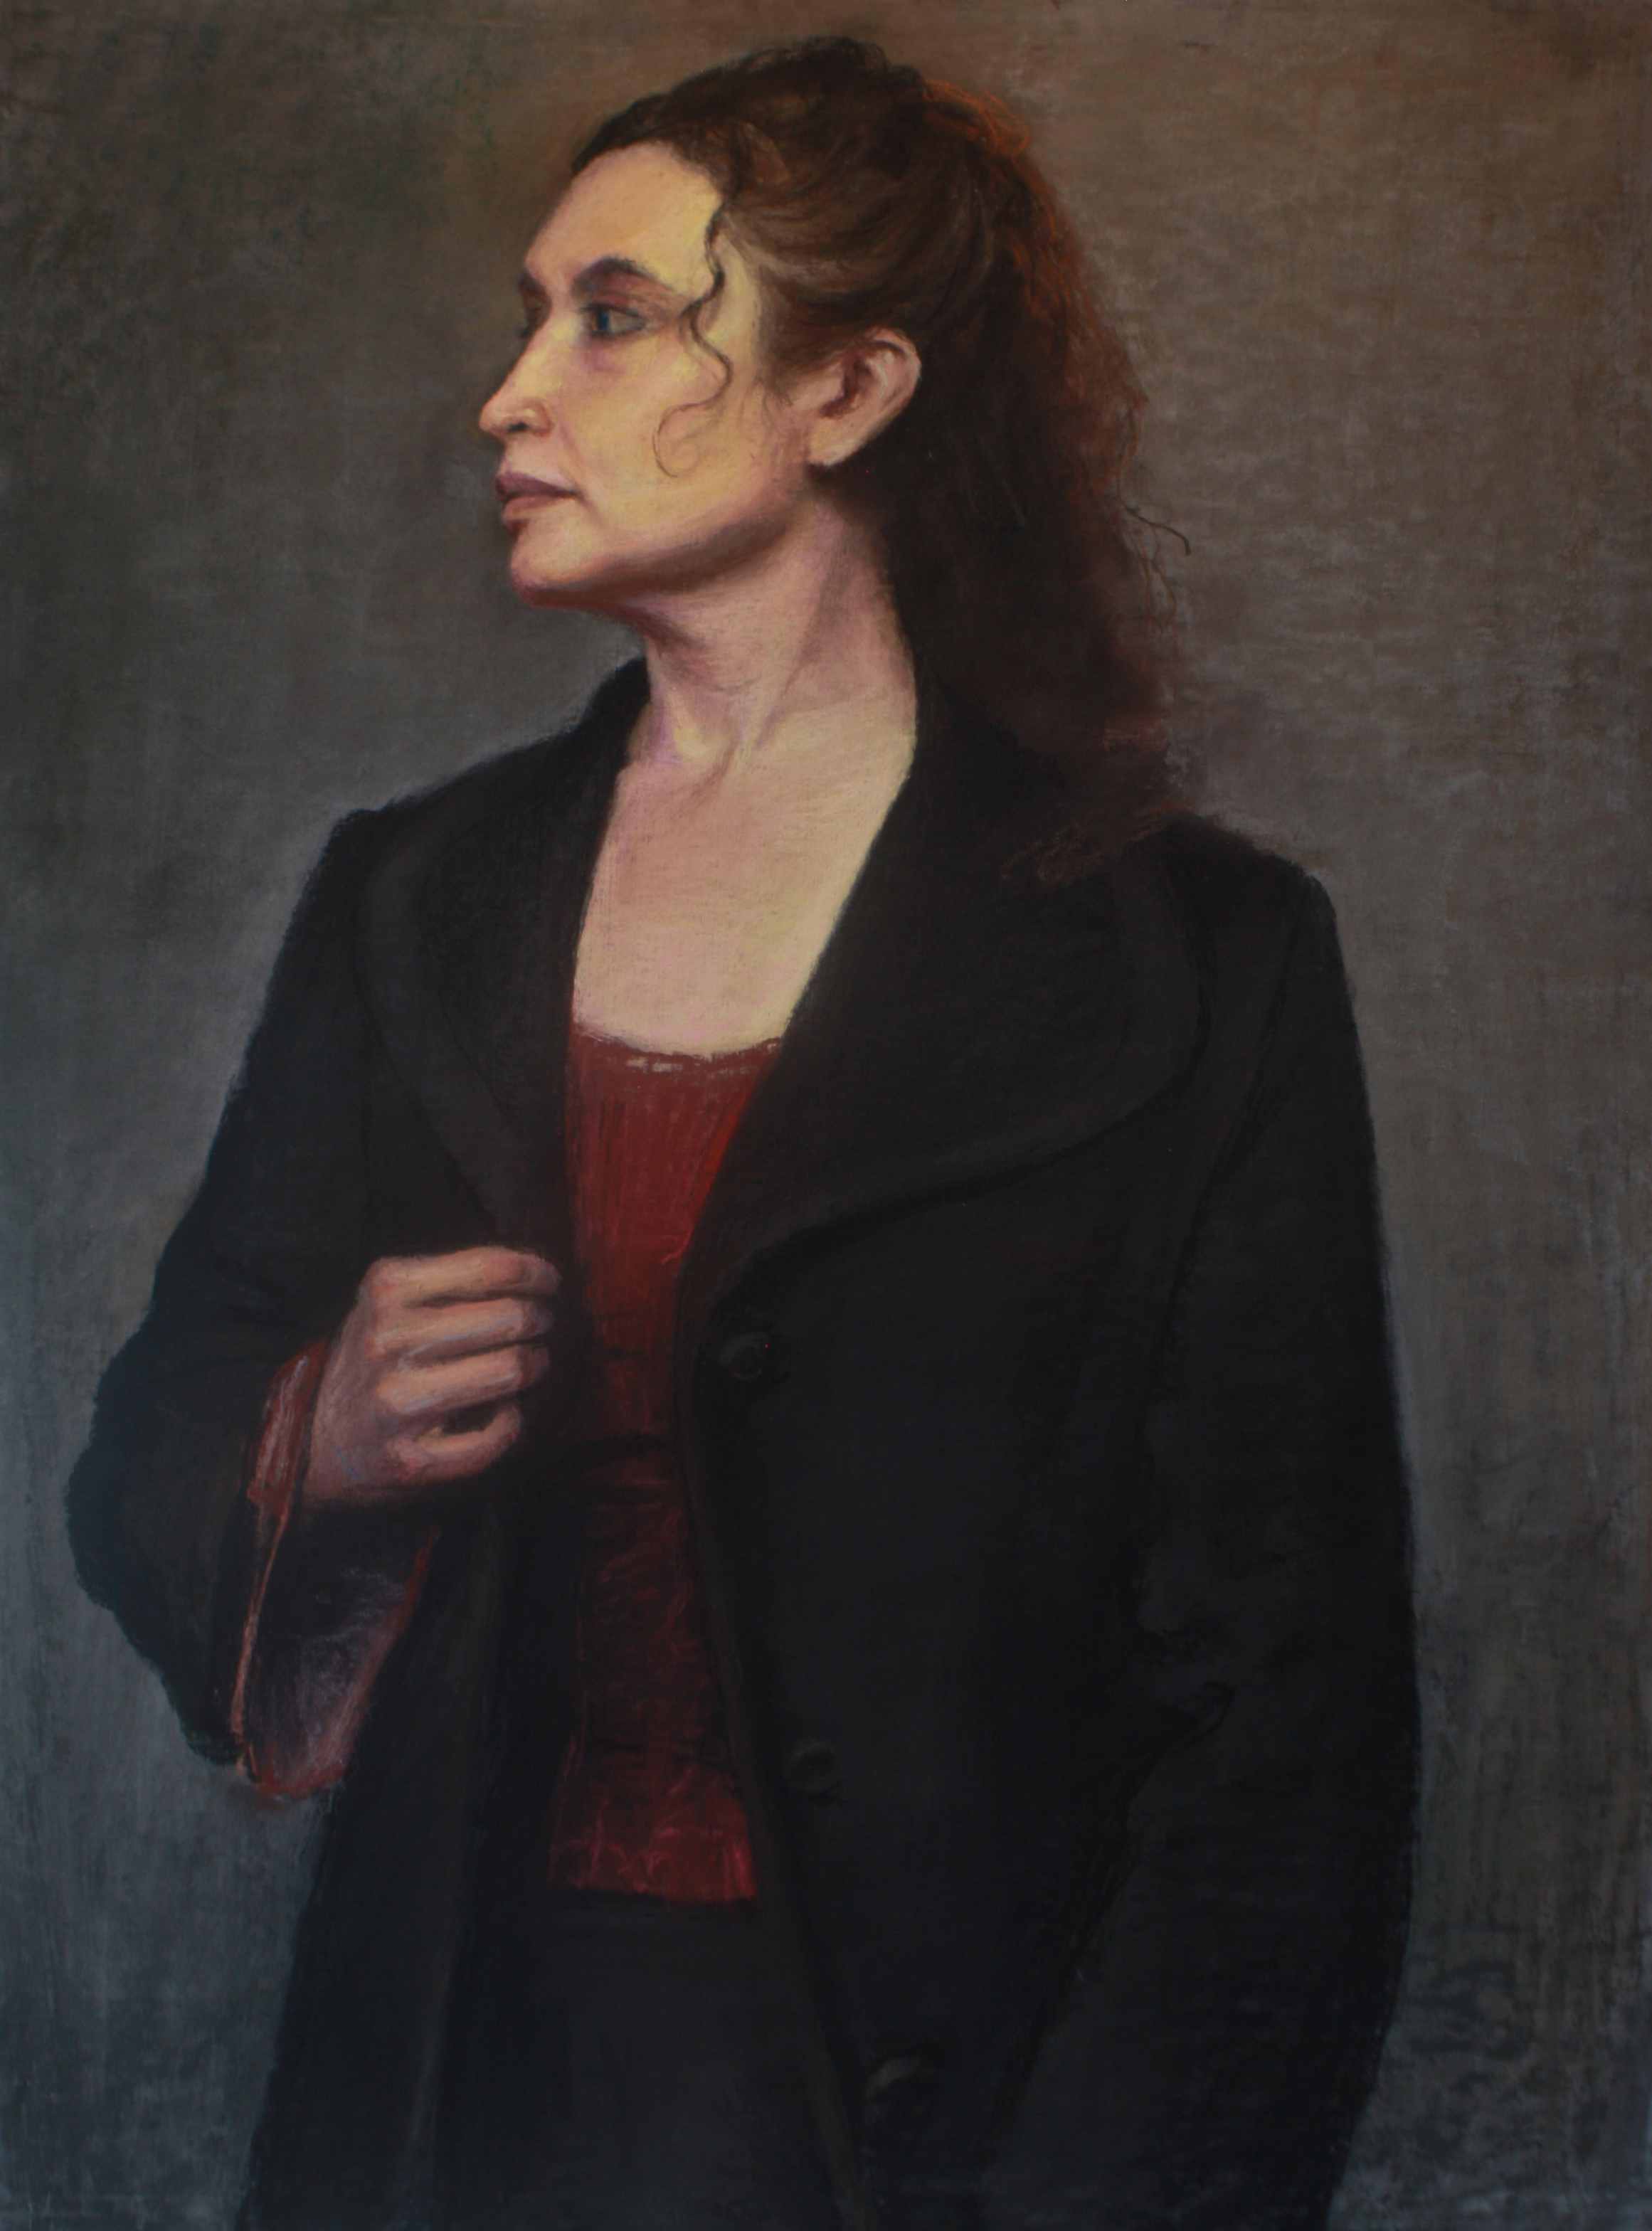 Woman in Black Coat